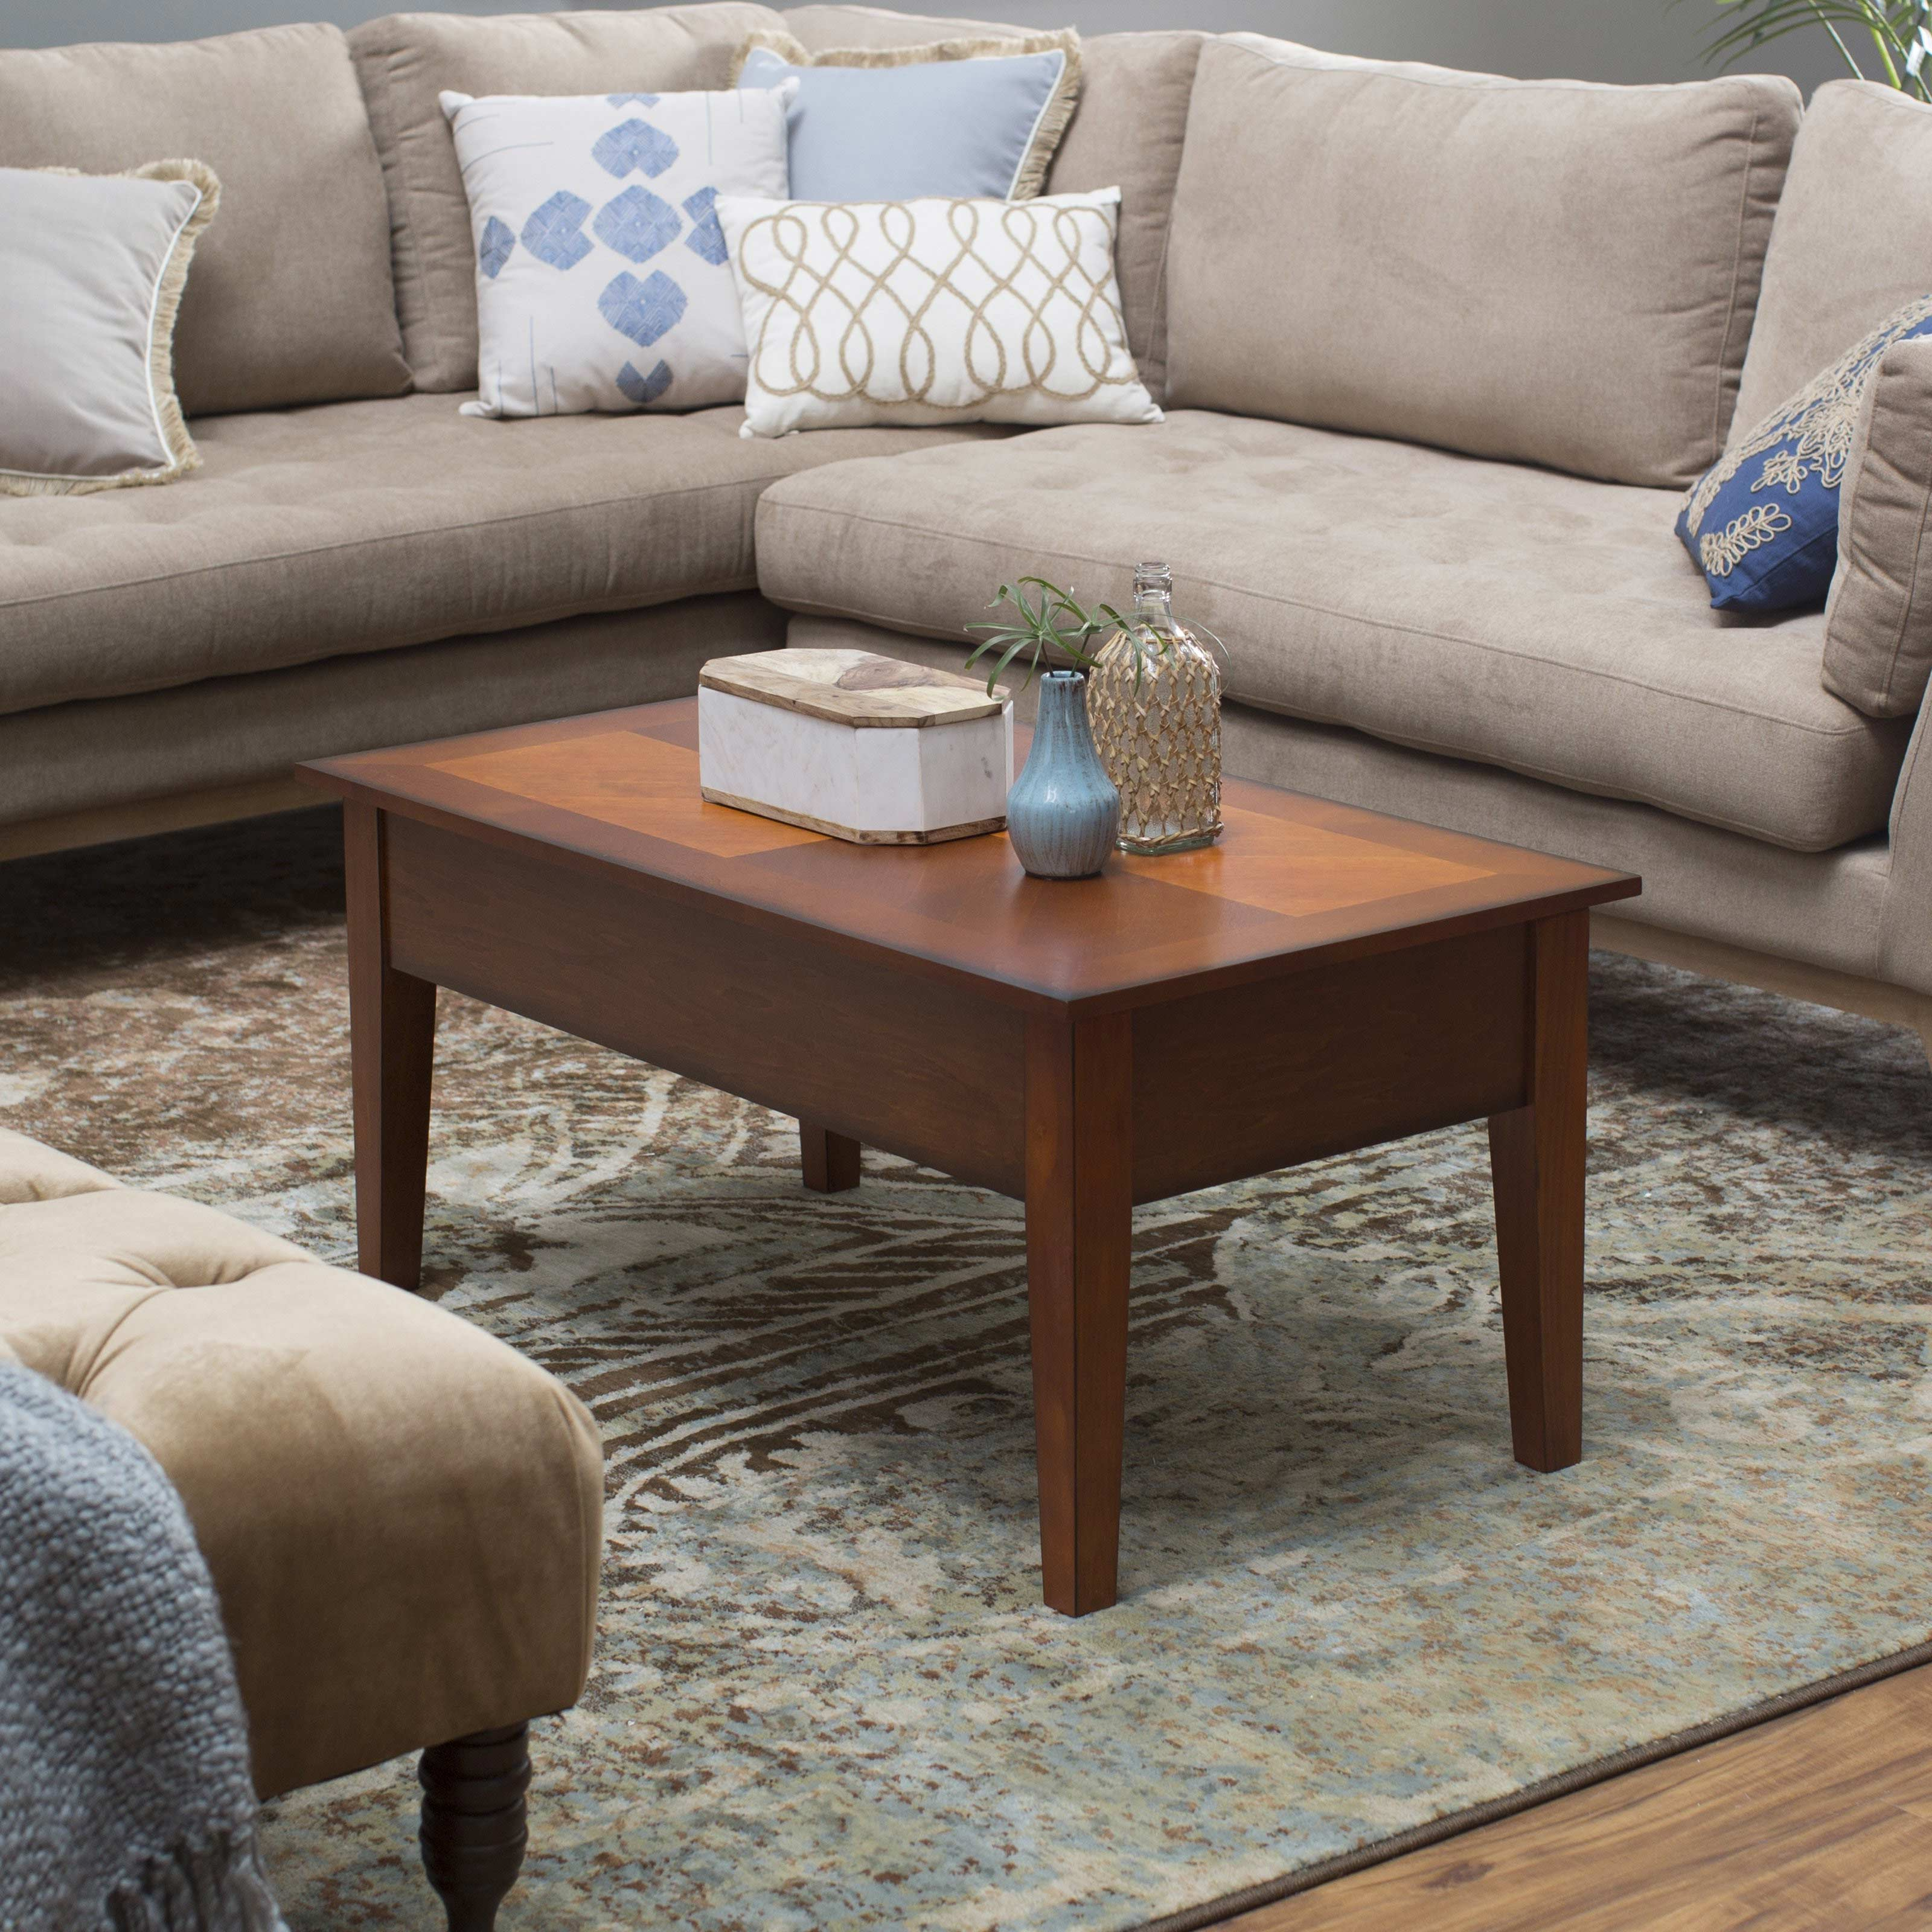 coffee tables under $50 22